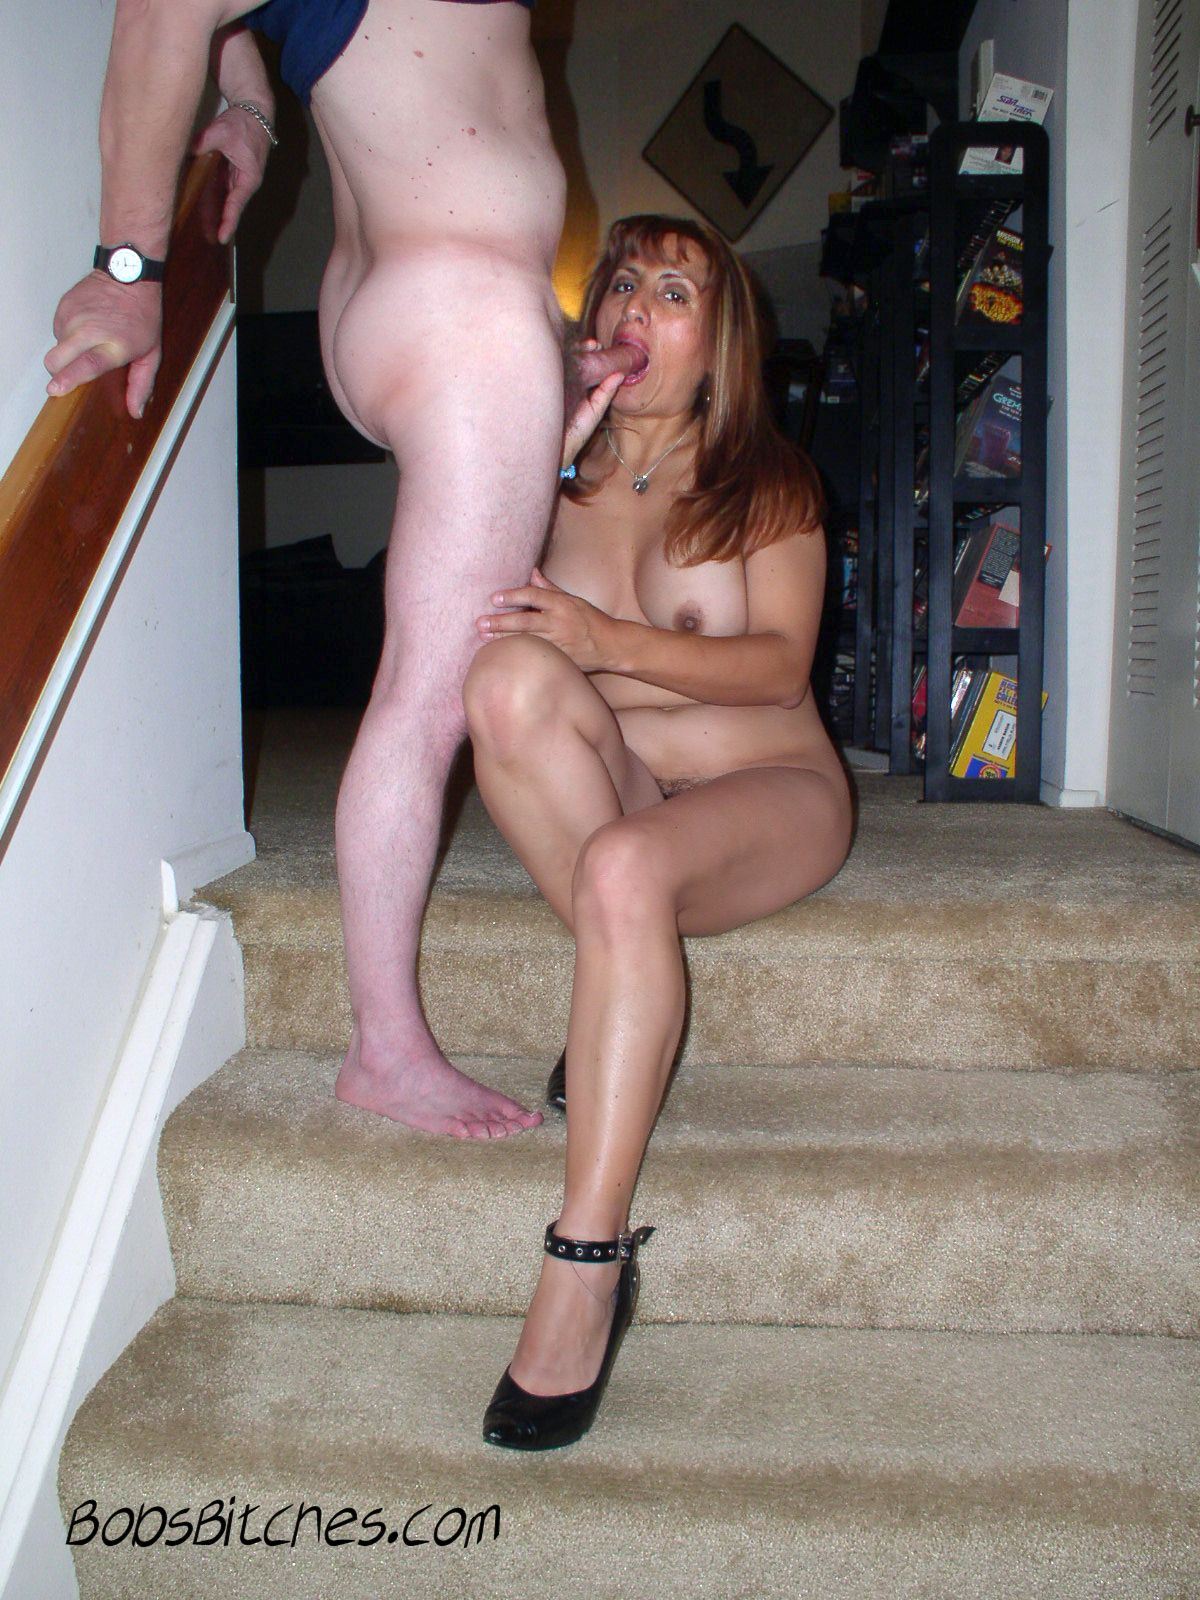 Latina milf sucks cock sitting on the stairs wearing only high heels.